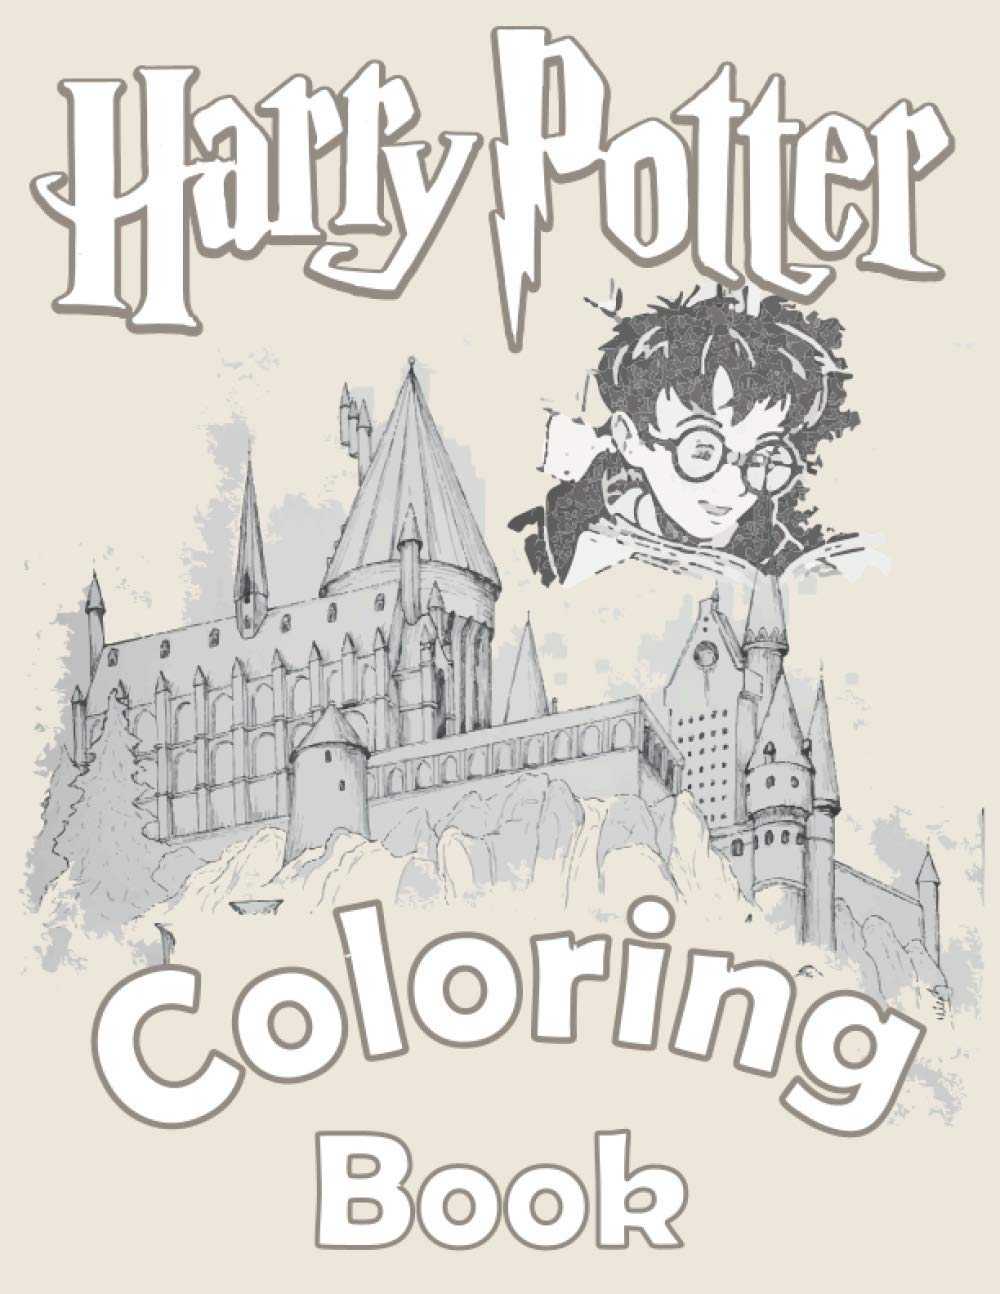 Harry Potter Coloring Book Characters Coloring Pages Perfect For Kids And Adults Fan Art Illustrations Large Size Coloring Pages Publishing Edith 9798555916150 Amazon Com Books